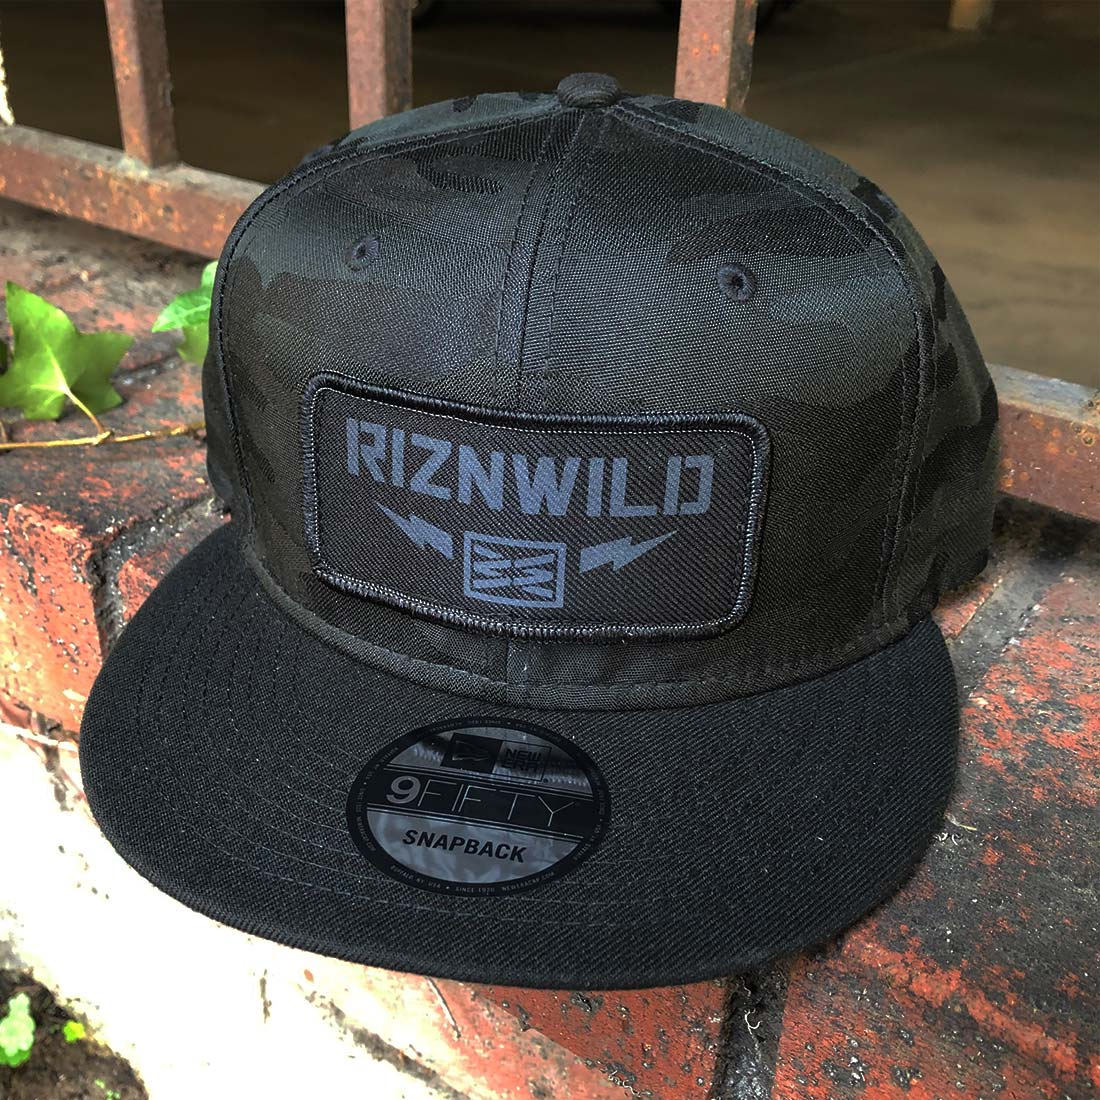 RIZNWILD | Camo new era hat with patch sewn on front